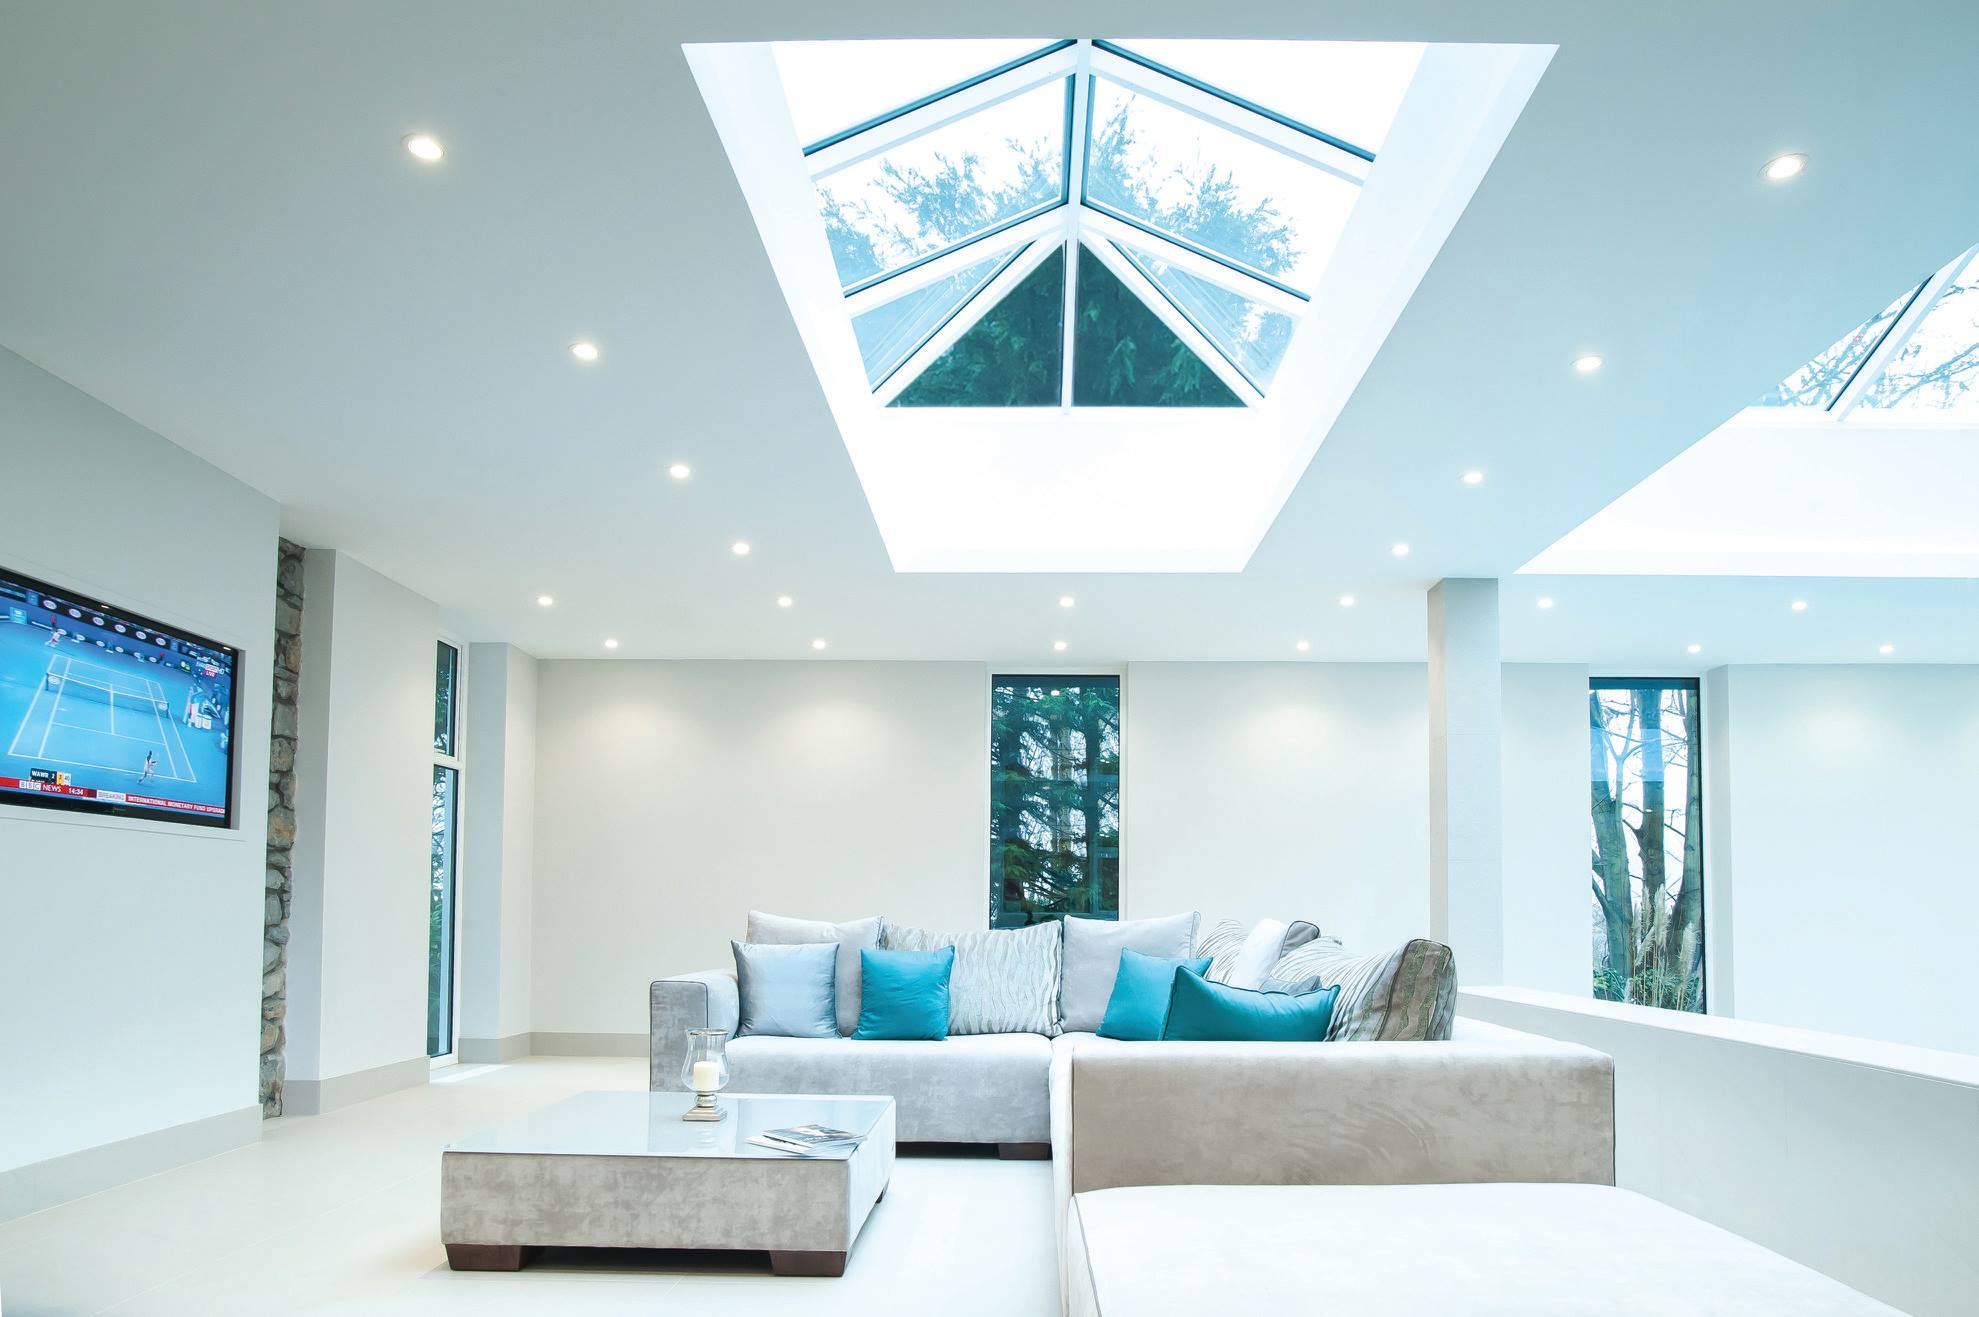 Lantern Roof Company Supplier Covering Ivybridge Plymouth Exeter Ads Windows And Doors